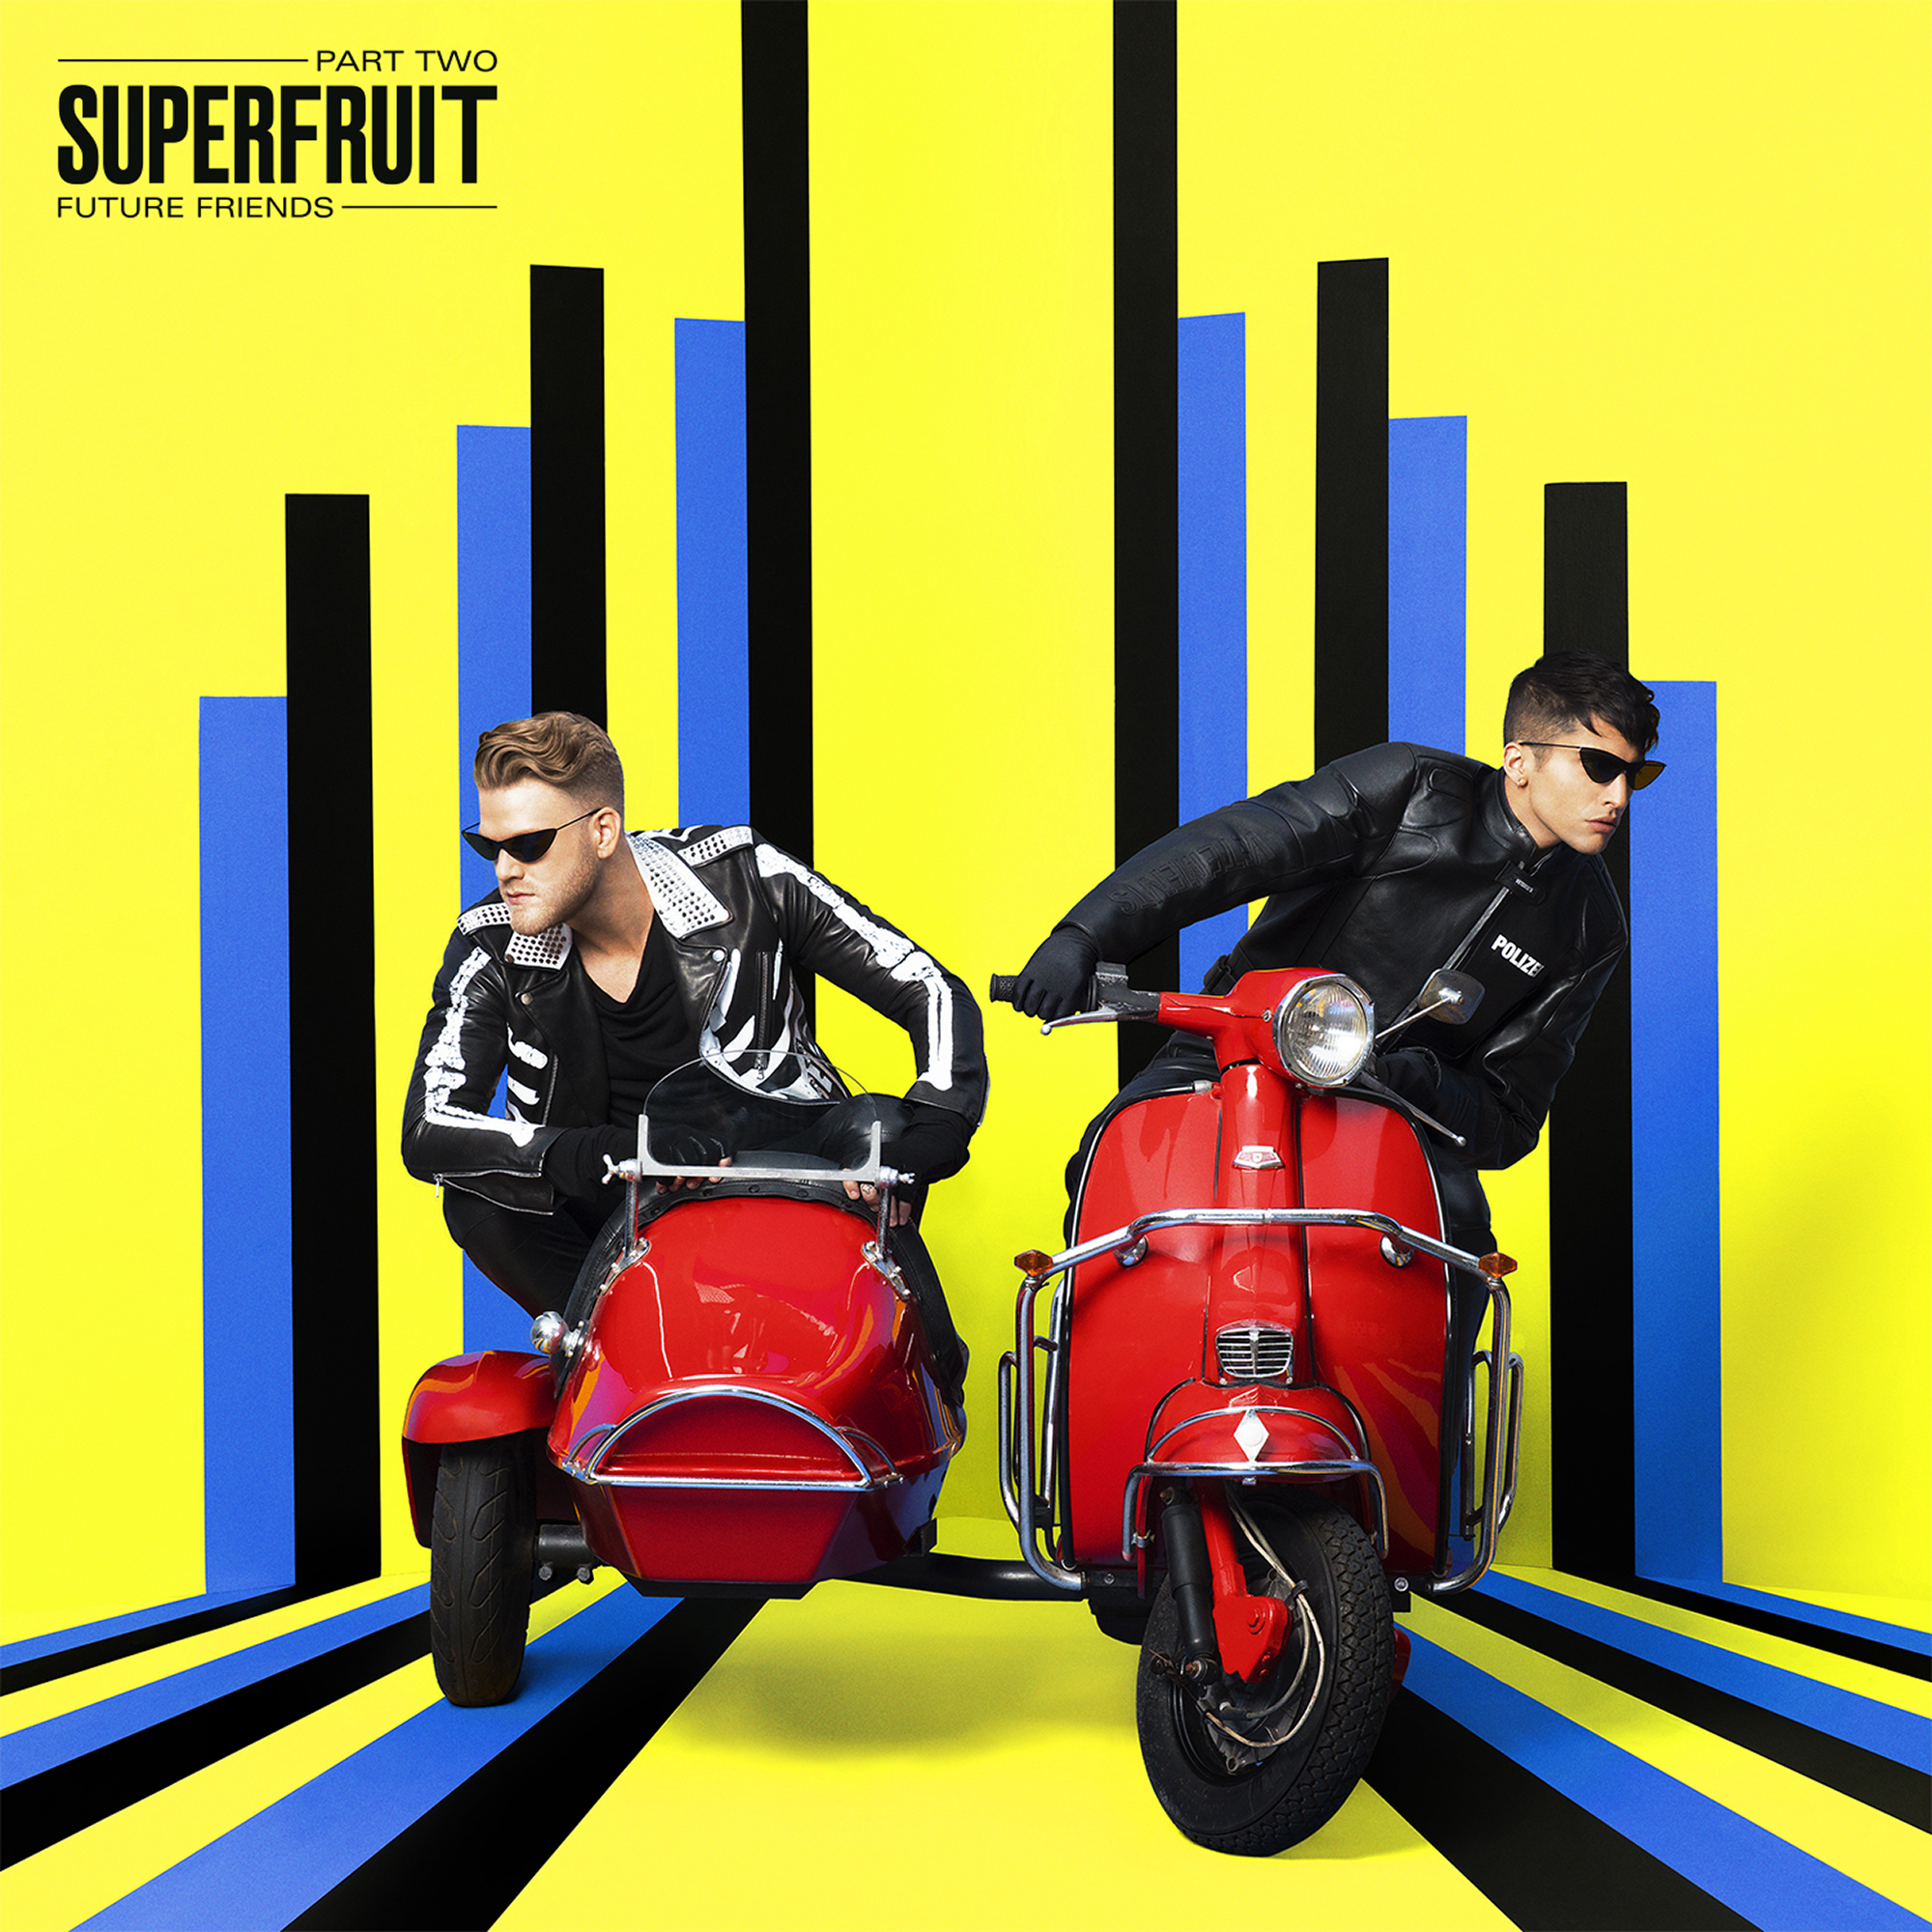 Superfruit_FutureFriends_Part_TWO_Cover_5x5_300dpi_RGB